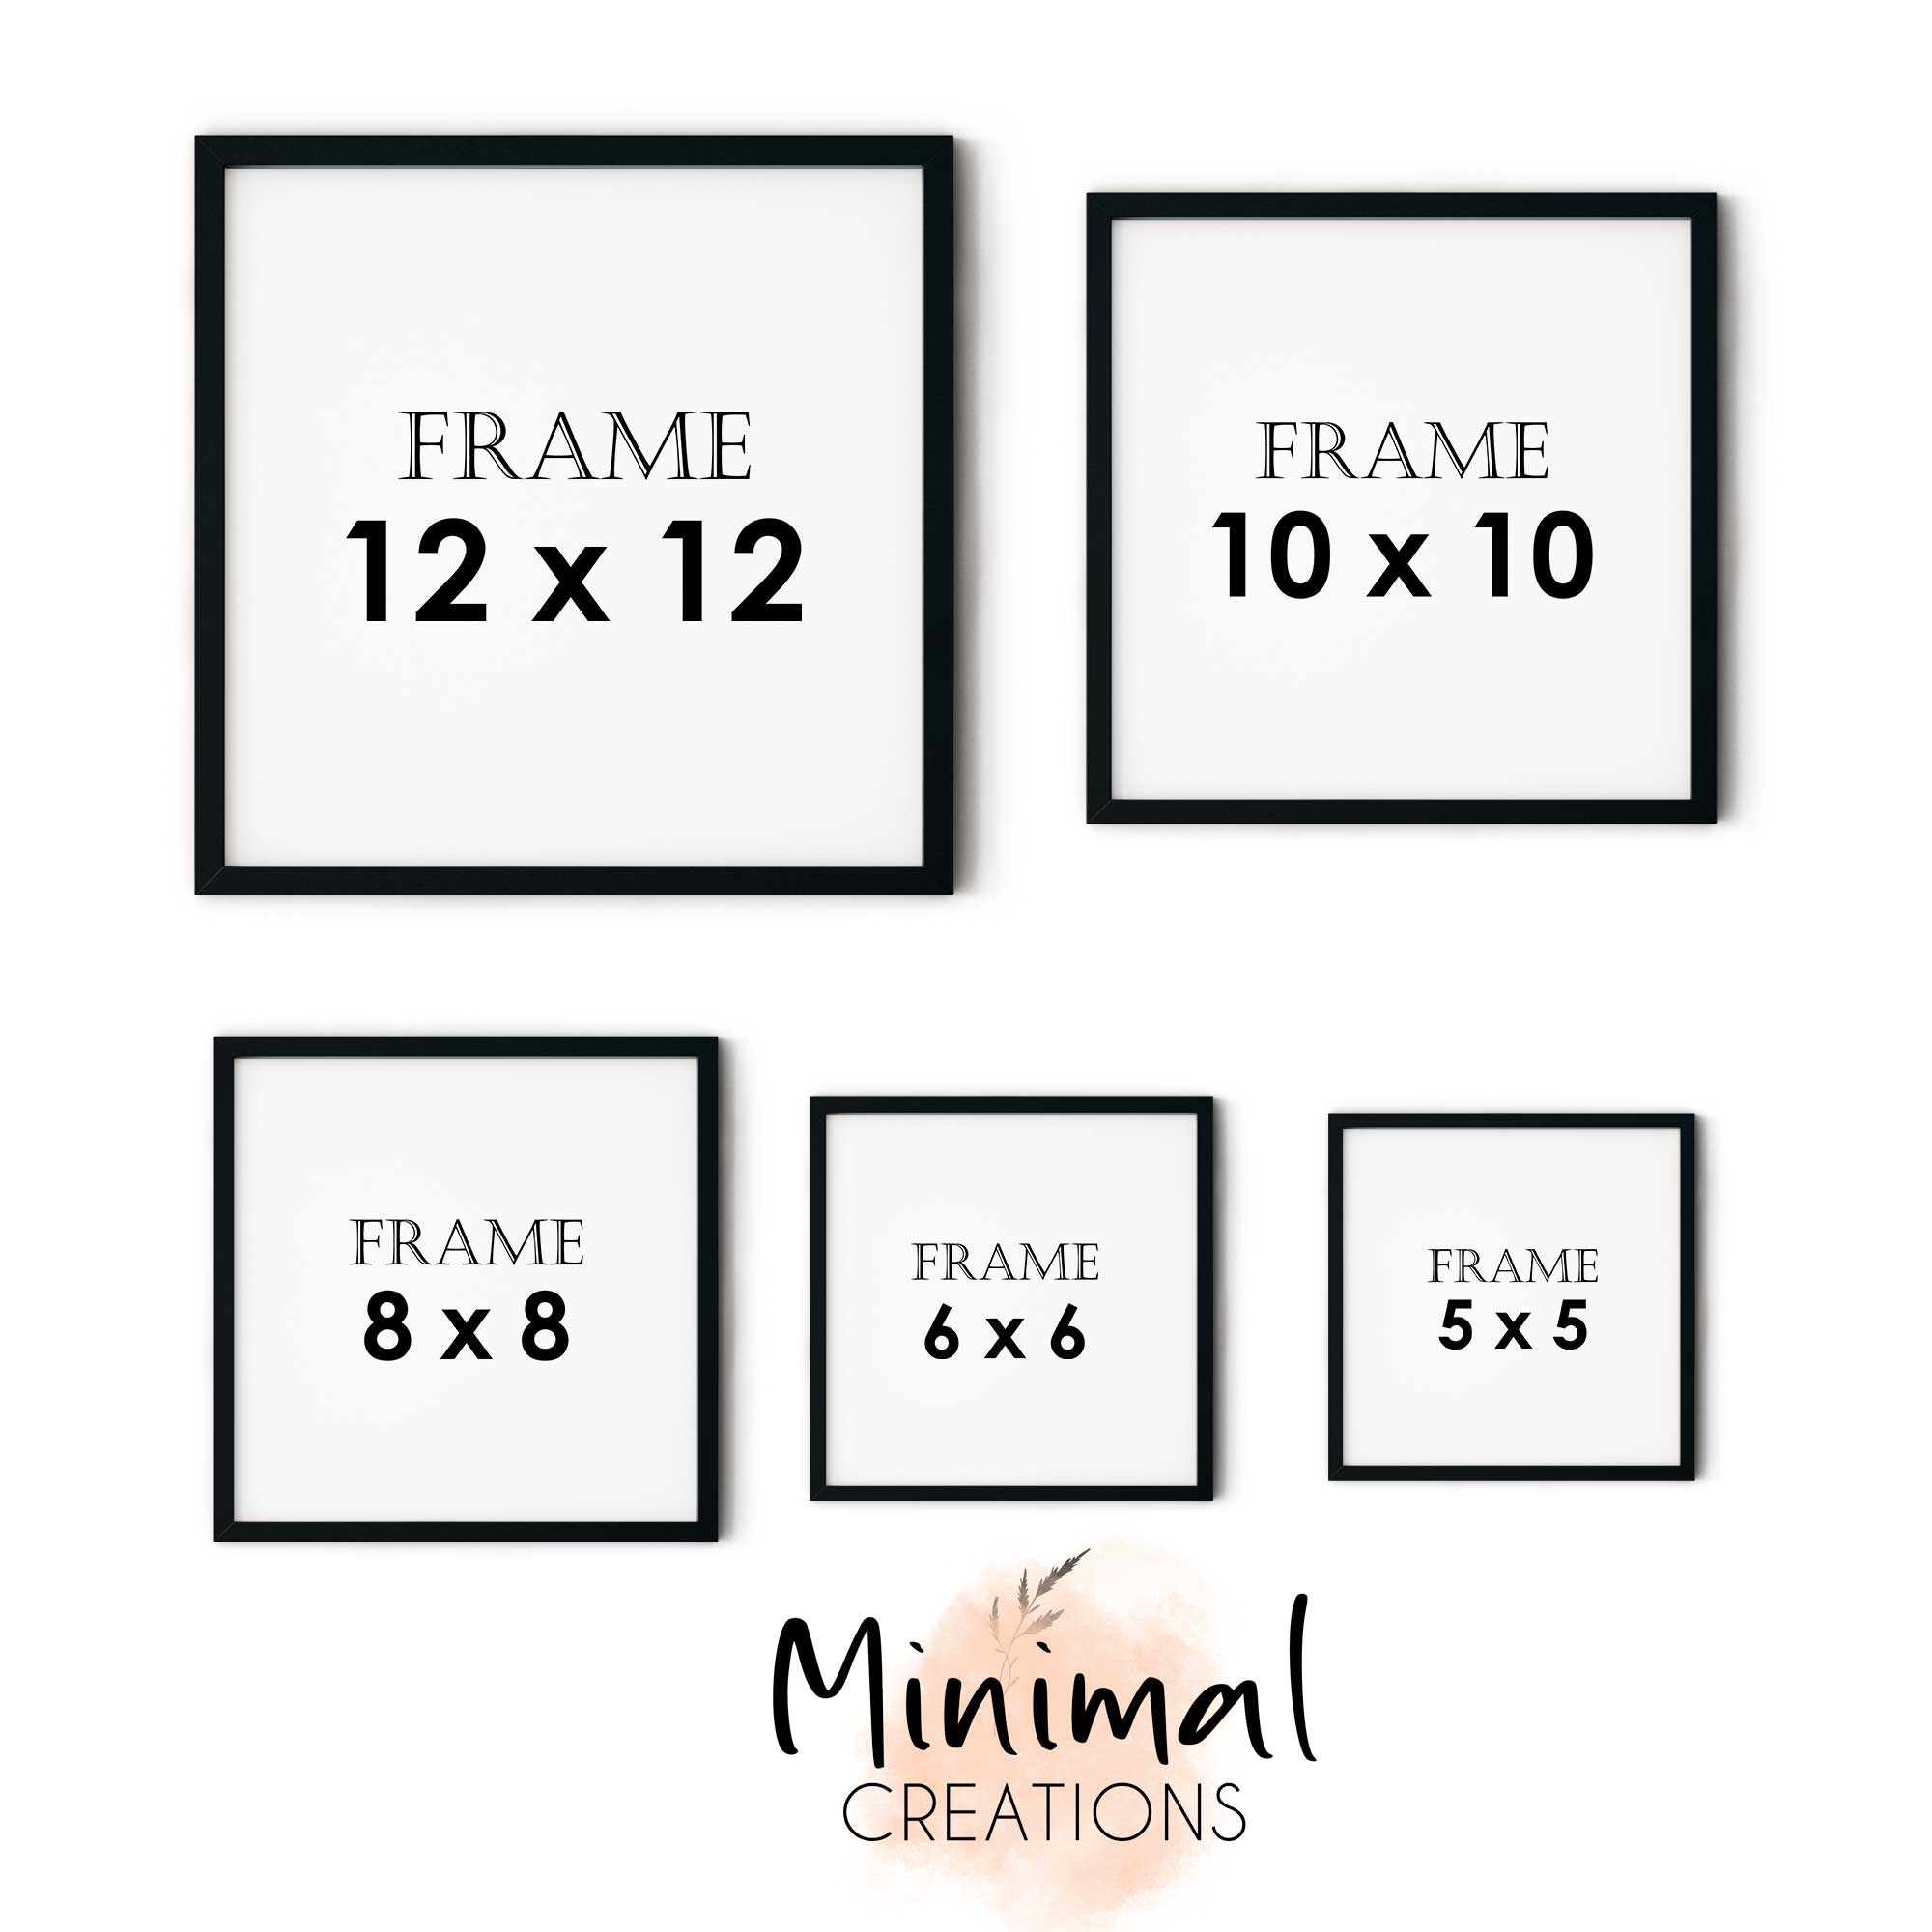 Single Minimalist Square Modern Customized Photo Frames Wall Decoration Photo Frame Wall Art Hanging Home Decoration Picture Gallery for Living Room Study Room